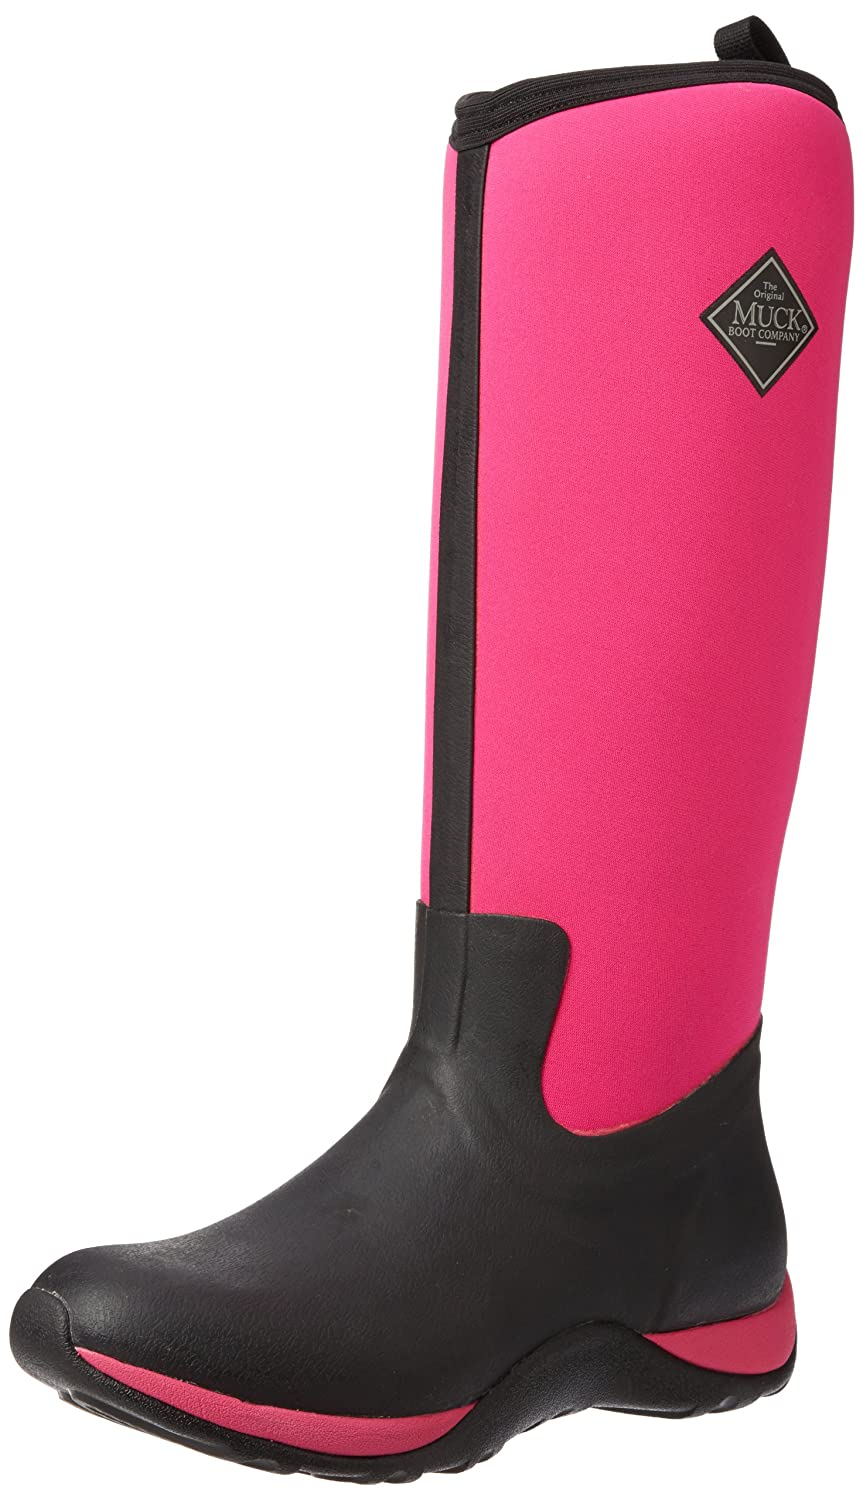 Muck Boot Women's Arctic Adventure Tall Snow Boot B00BN611Y4 6 B(M) US|Black/Hot Pink